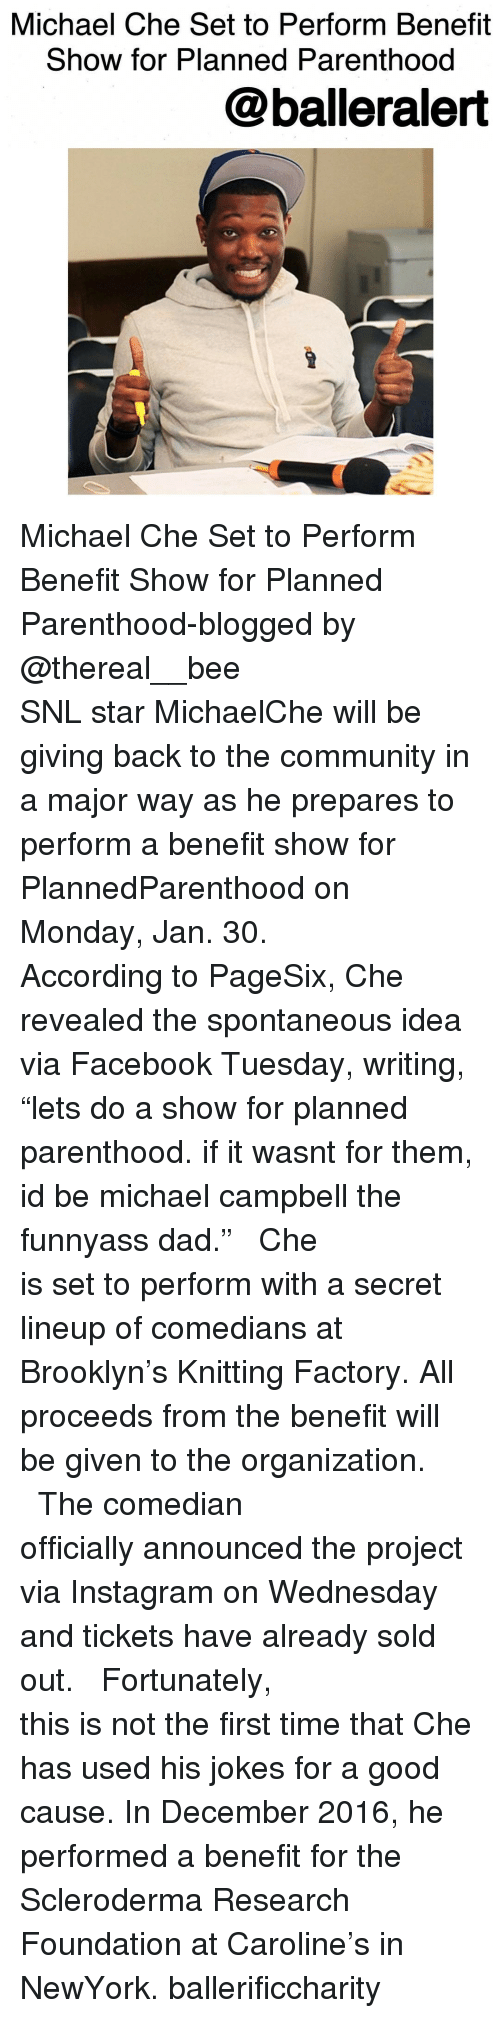 """the comedian: Michael Che Set to  Perform Benefit  Show for Planned Parenthood  balleralert Michael Che Set to Perform Benefit Show for Planned Parenthood-blogged by @thereal__bee ⠀⠀⠀⠀⠀⠀⠀⠀⠀ ⠀⠀⠀⠀⠀⠀⠀⠀⠀ SNL star MichaelChe will be giving back to the community in a major way as he prepares to perform a benefit show for PlannedParenthood on Monday, Jan. 30. ⠀⠀⠀⠀⠀⠀⠀⠀⠀ ⠀⠀⠀⠀⠀⠀⠀⠀⠀ According to PageSix, Che revealed the spontaneous idea via Facebook Tuesday, writing, """"lets do a show for planned parenthood. if it wasnt for them, id be michael campbell the funnyass dad."""" ⠀⠀⠀⠀⠀⠀⠀⠀⠀ ⠀⠀⠀⠀⠀⠀⠀⠀⠀ Che is set to perform with a secret lineup of comedians at Brooklyn's Knitting Factory. All proceeds from the benefit will be given to the organization. ⠀⠀⠀⠀⠀⠀⠀⠀⠀ ⠀⠀⠀⠀⠀⠀⠀⠀⠀ The comedian officially announced the project via Instagram on Wednesday and tickets have already sold out. ⠀⠀⠀⠀⠀⠀⠀⠀⠀ ⠀⠀⠀⠀⠀⠀⠀⠀⠀ Fortunately, this is not the first time that Che has used his jokes for a good cause. In December 2016, he performed a benefit for the Scleroderma Research Foundation at Caroline's in NewYork. ballerificcharity"""